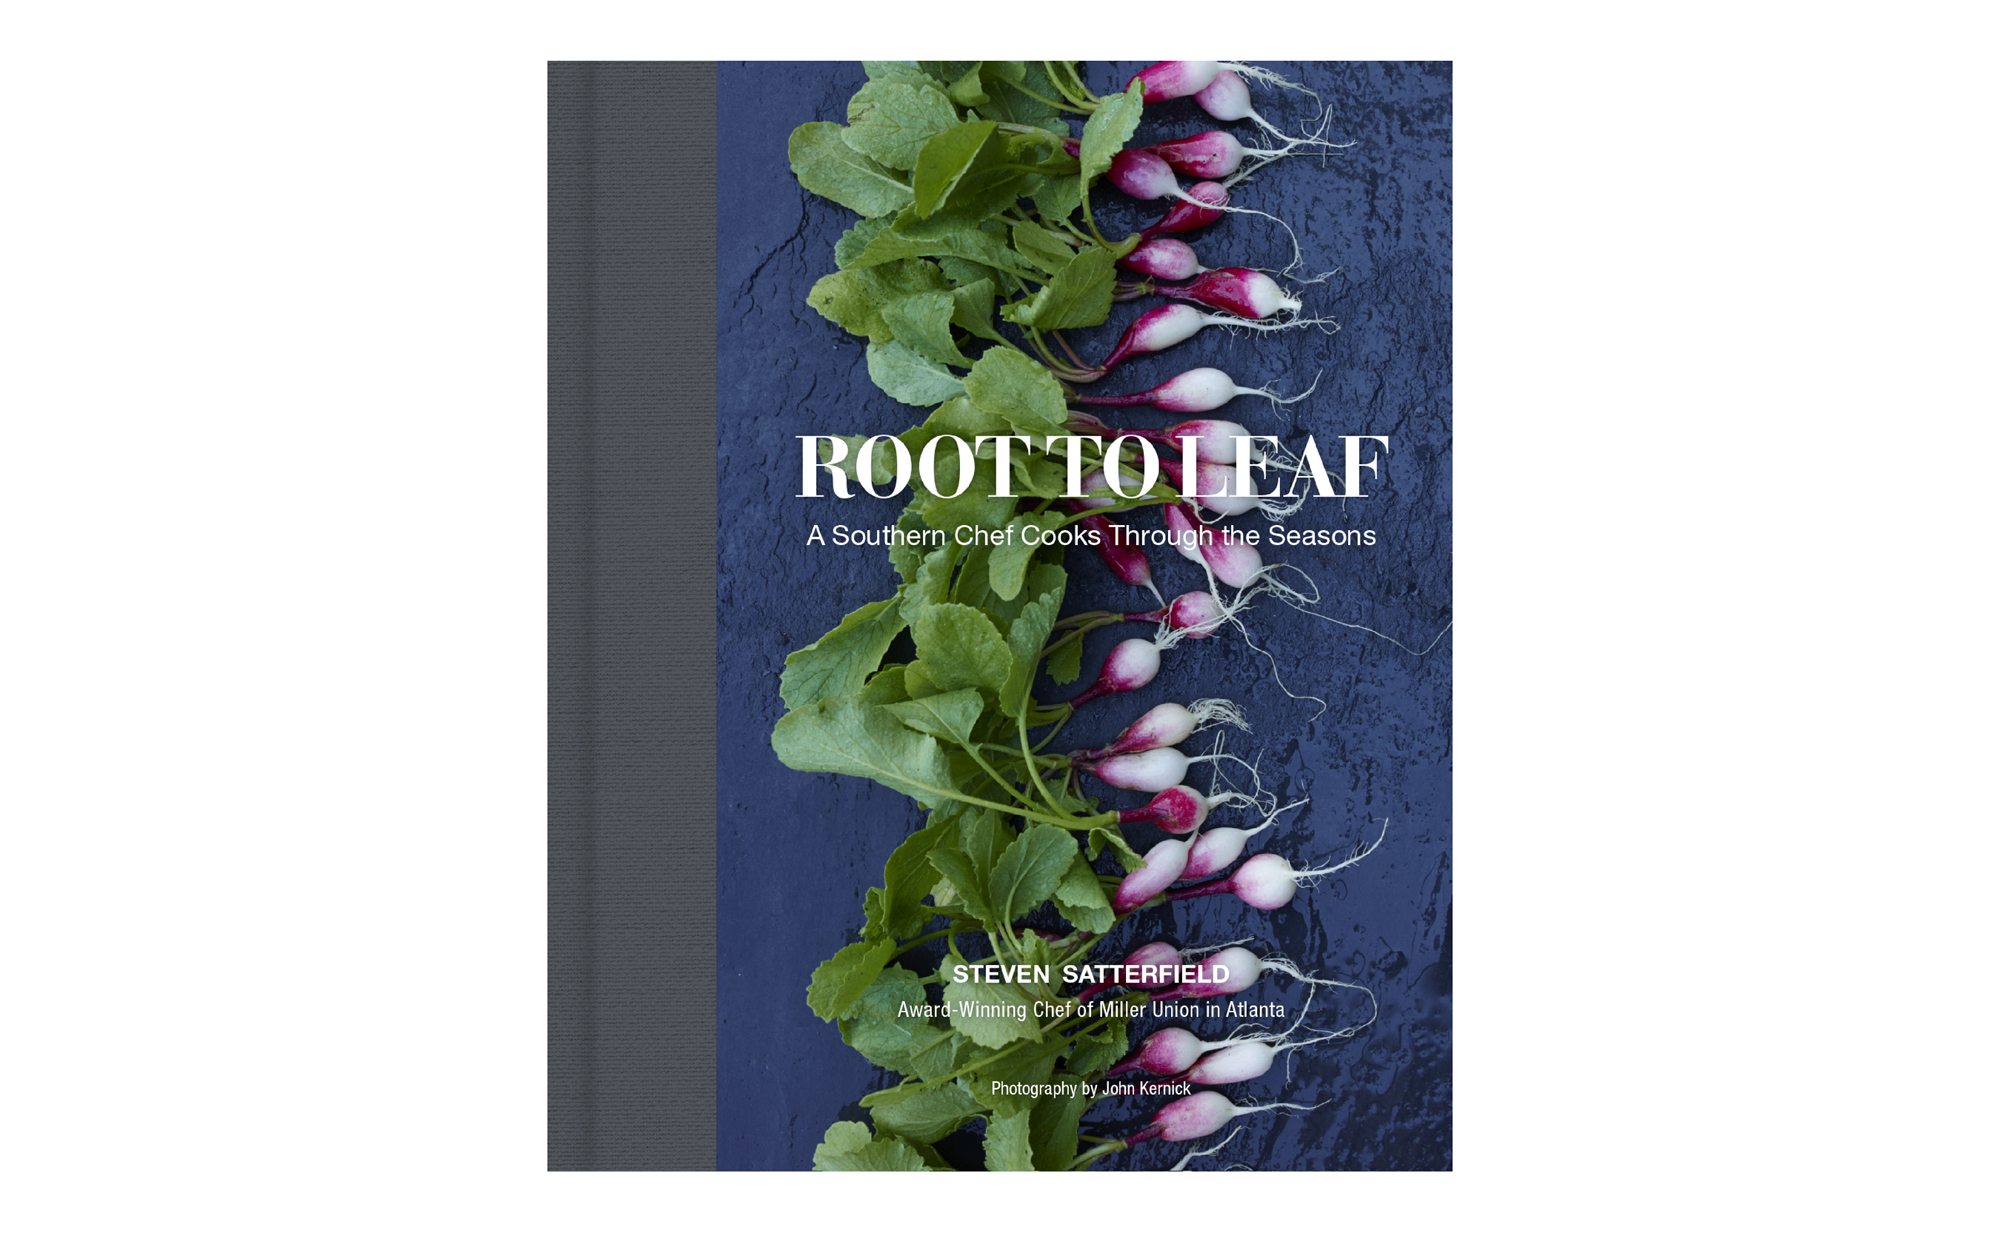 Root to Leaf: A Southern Chef Cooks Through the Seasons, by Steven Satterfield